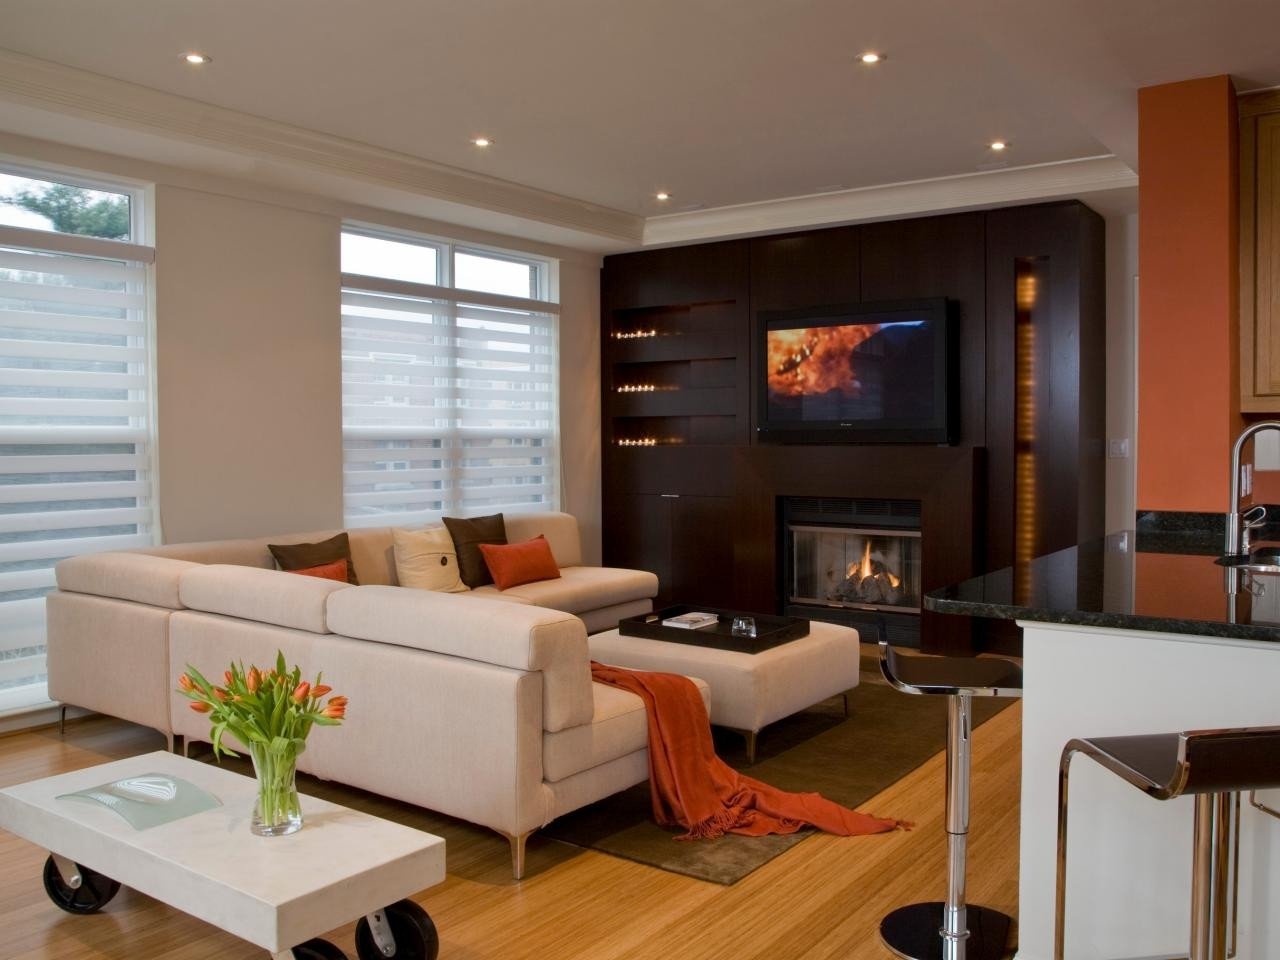 Contemporary Living Room Fireplace Beautiful 10 Ultramodern Fireplaces Living Room and Dining Room Decorating Ideas and Design